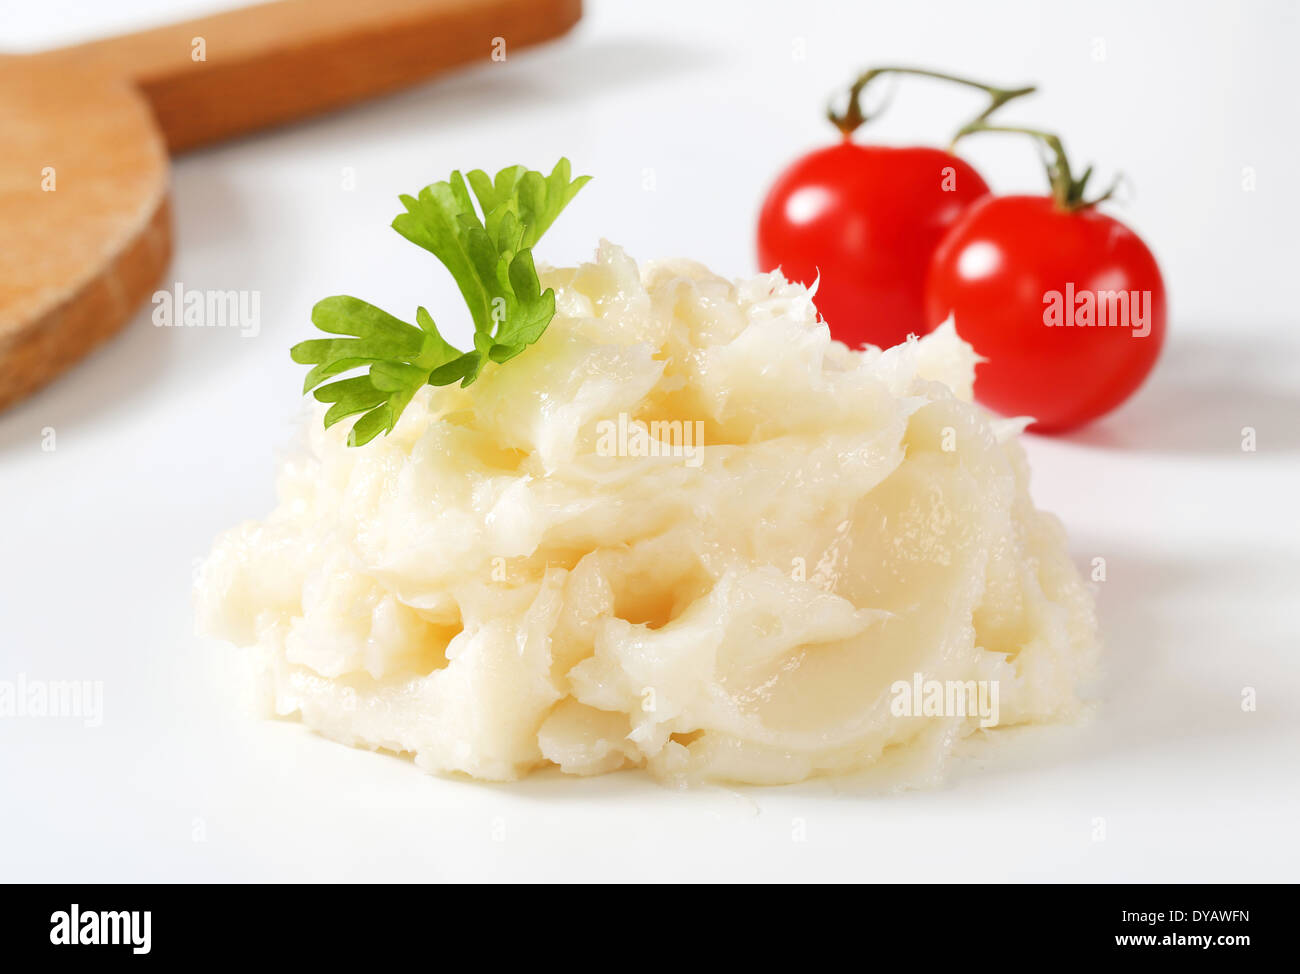 Pork lard spread - studio shot - Stock Image